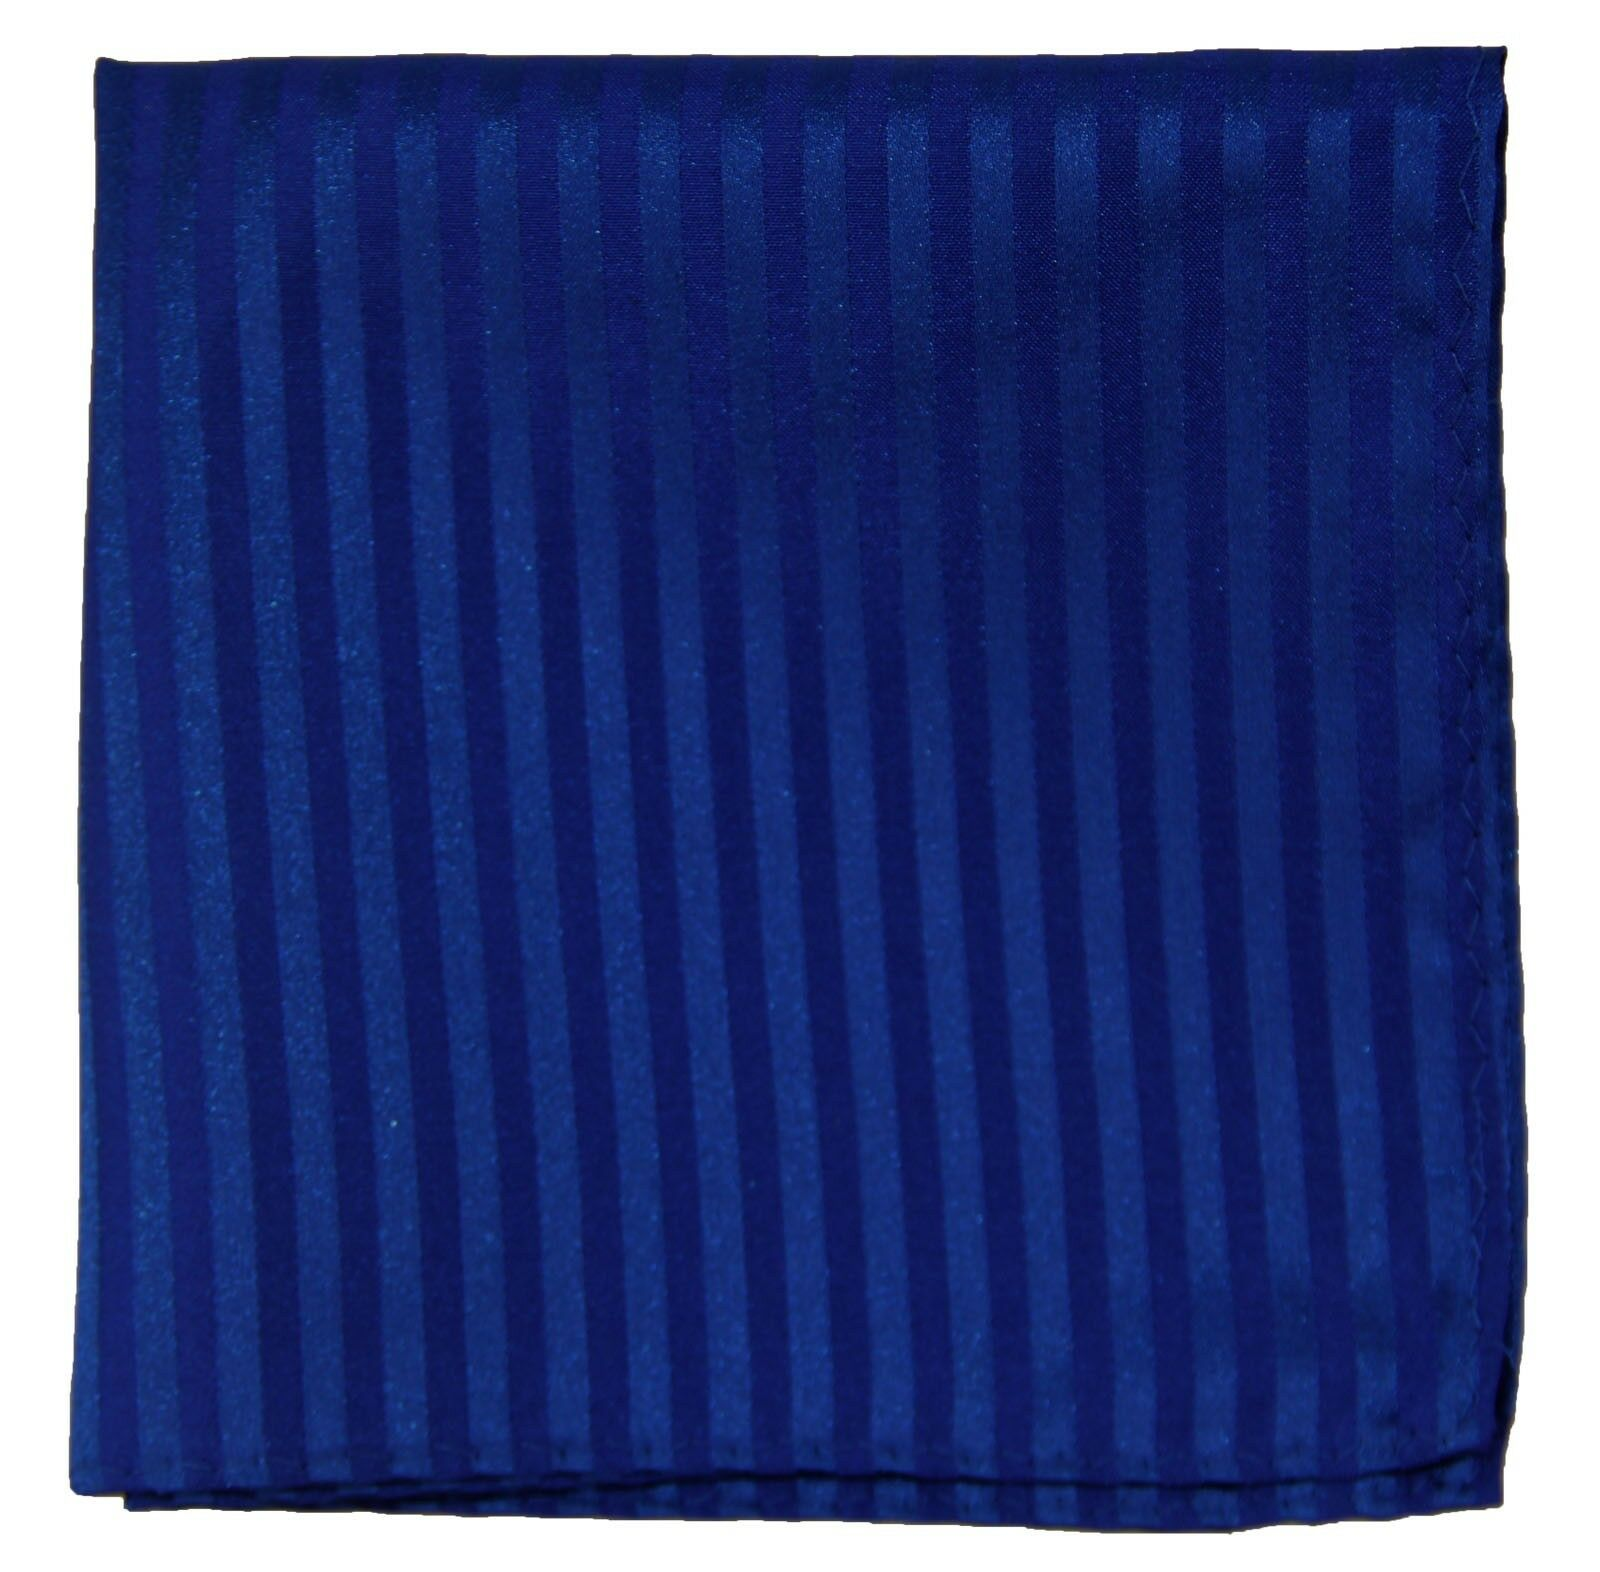 New Men's Polyester Woven pocket square hankie only royal tone on tone stripes